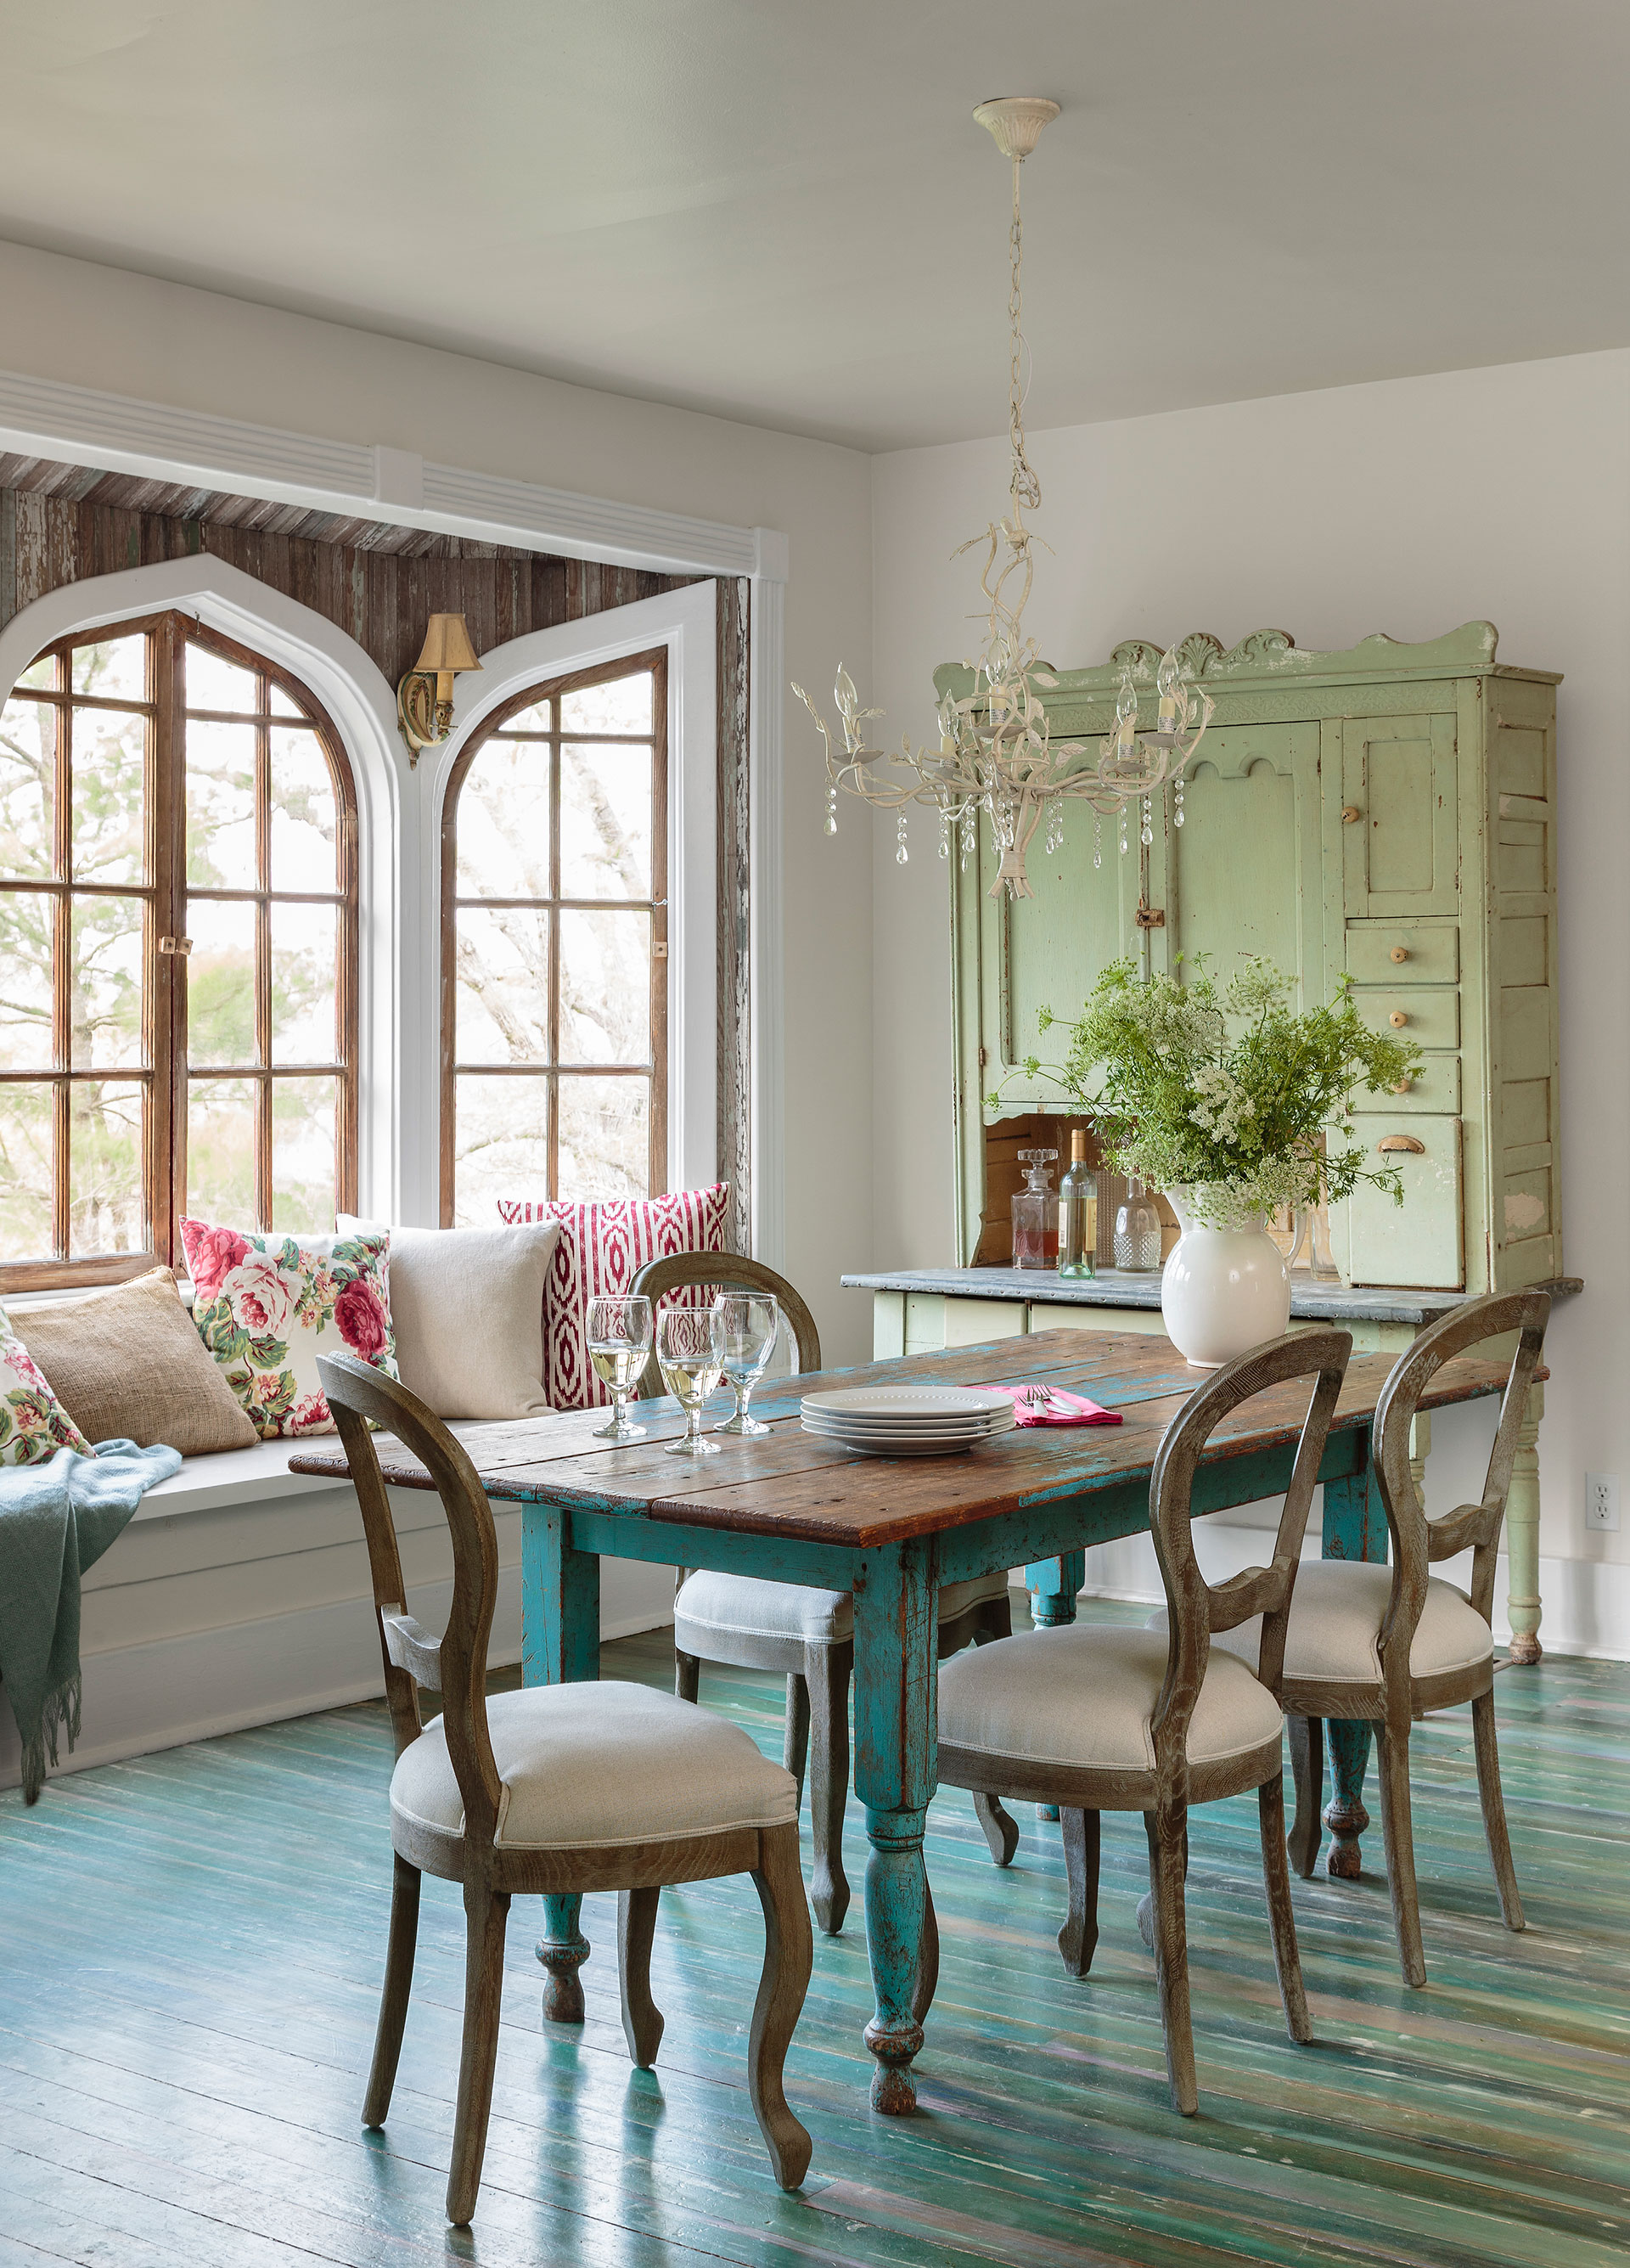 How to modify your dining room design?